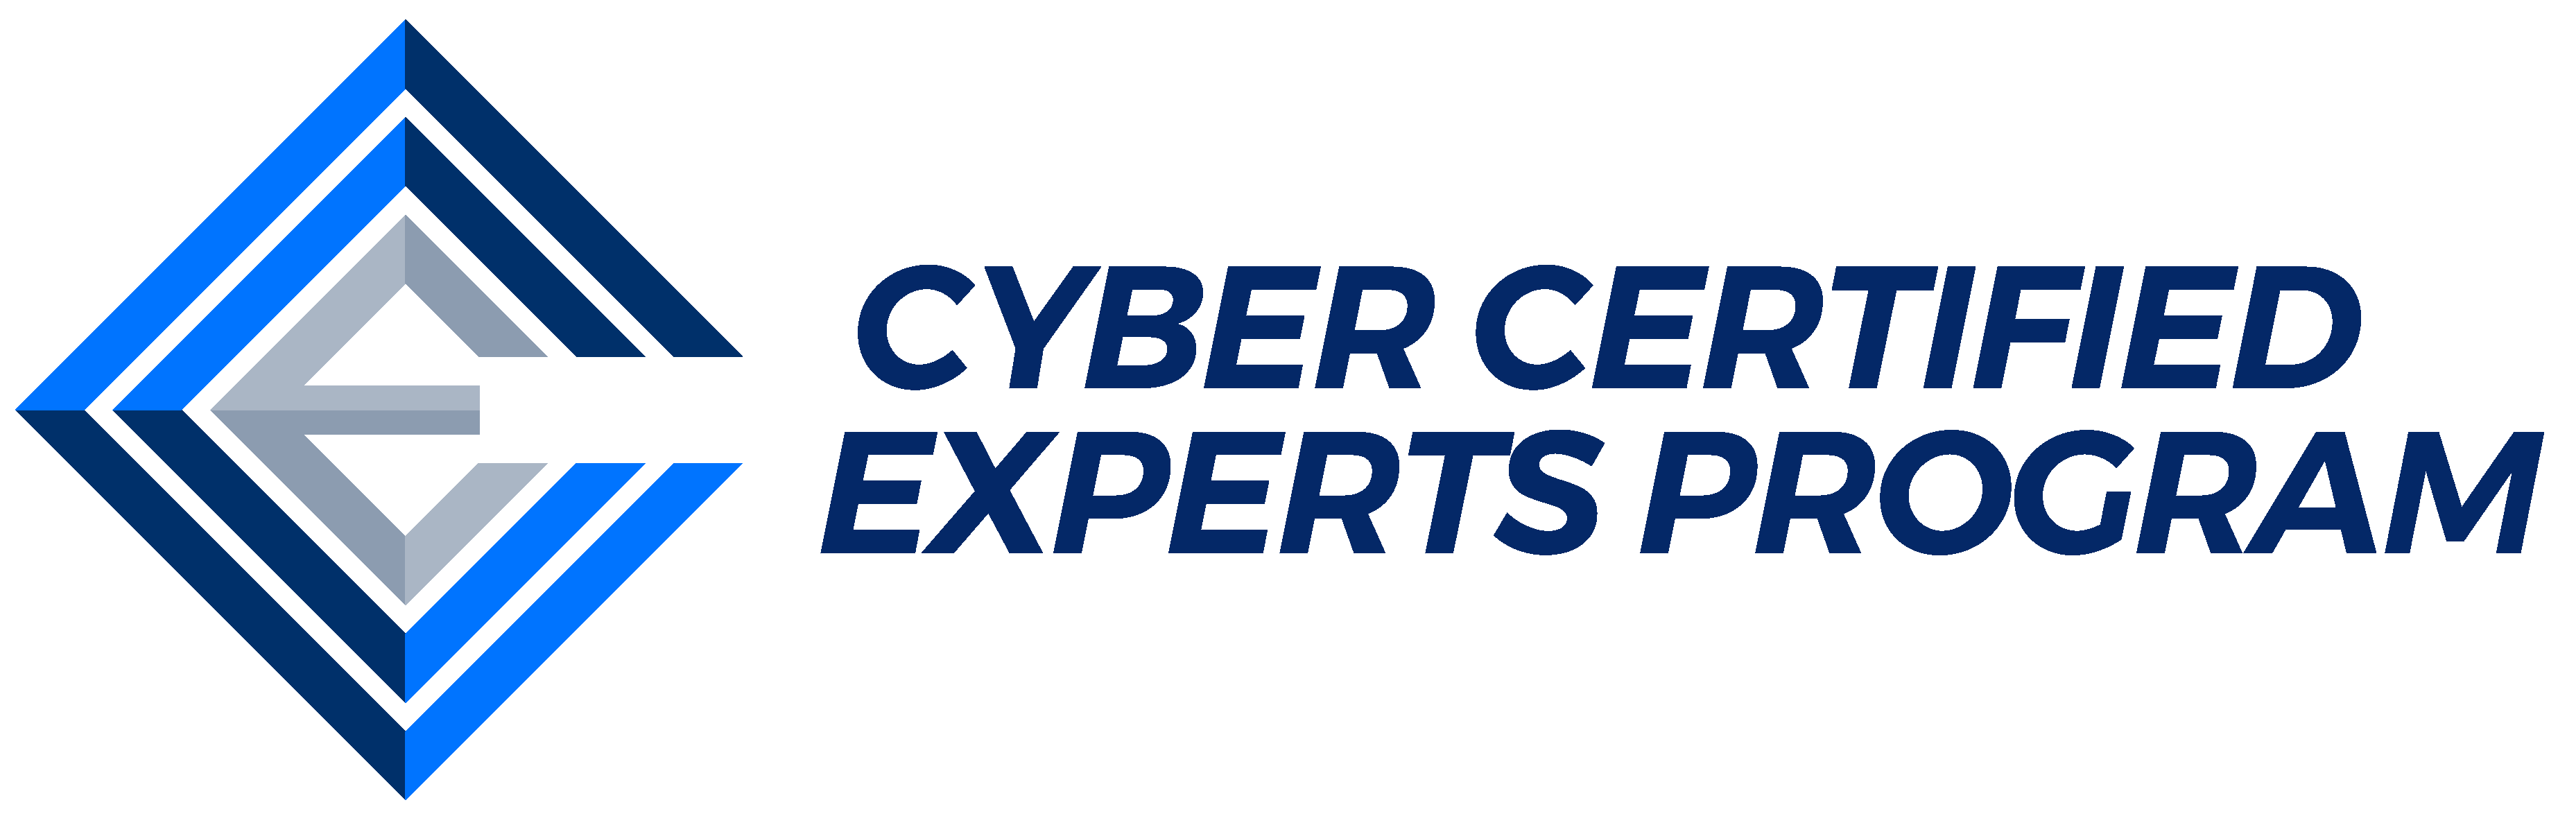 Cyber Certified Experts Program